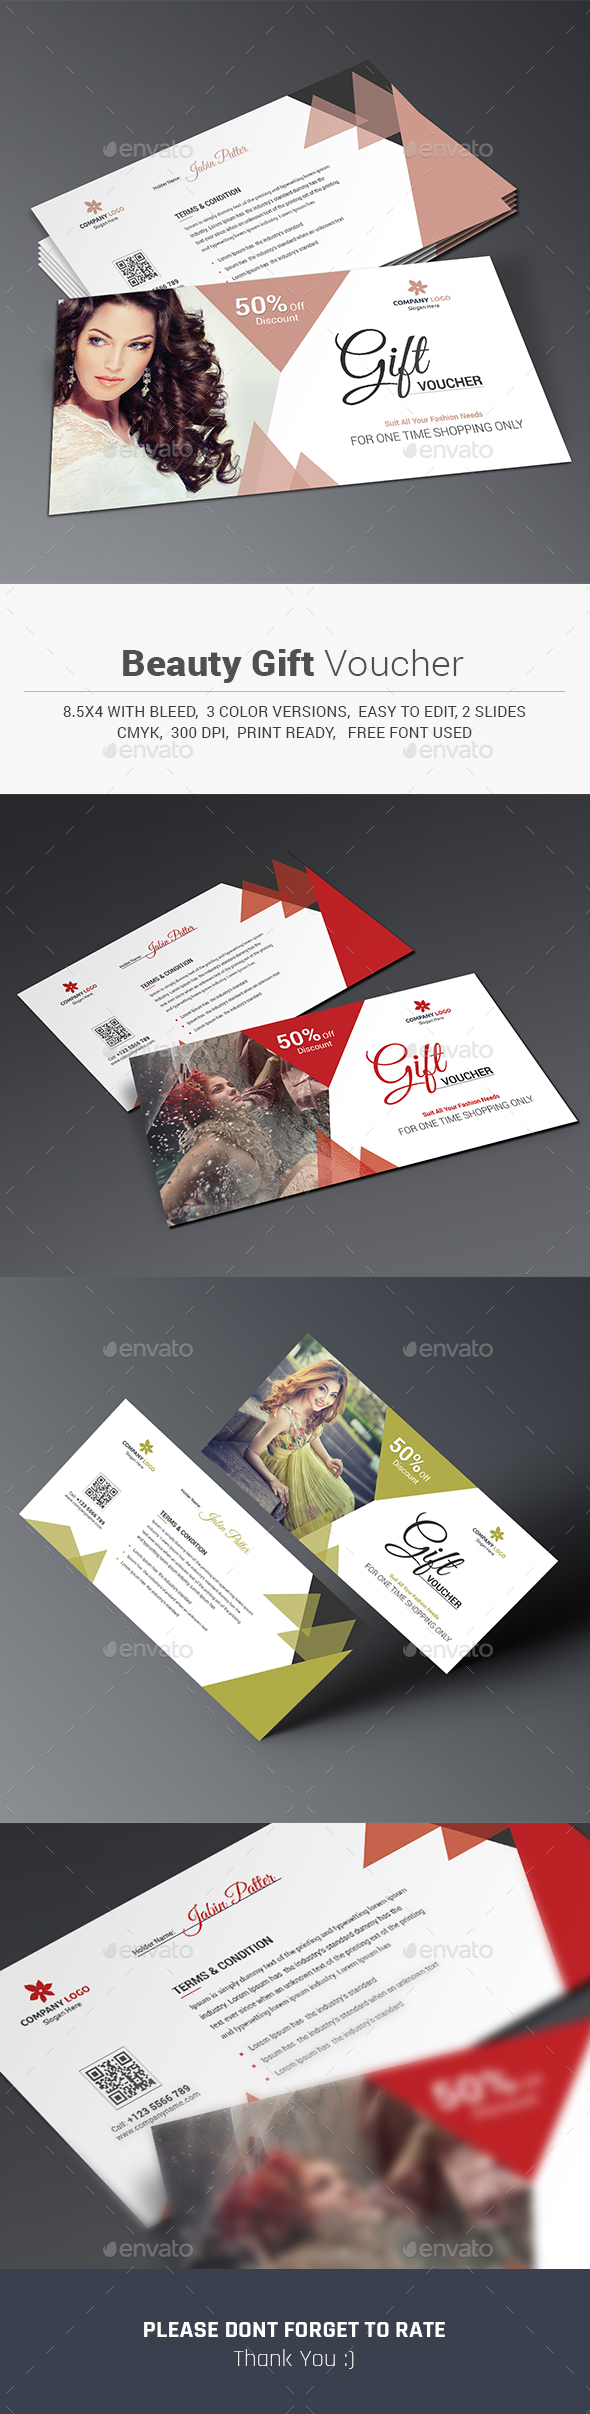 Beauty Gift Voucher - Cards & Invites Print Templates